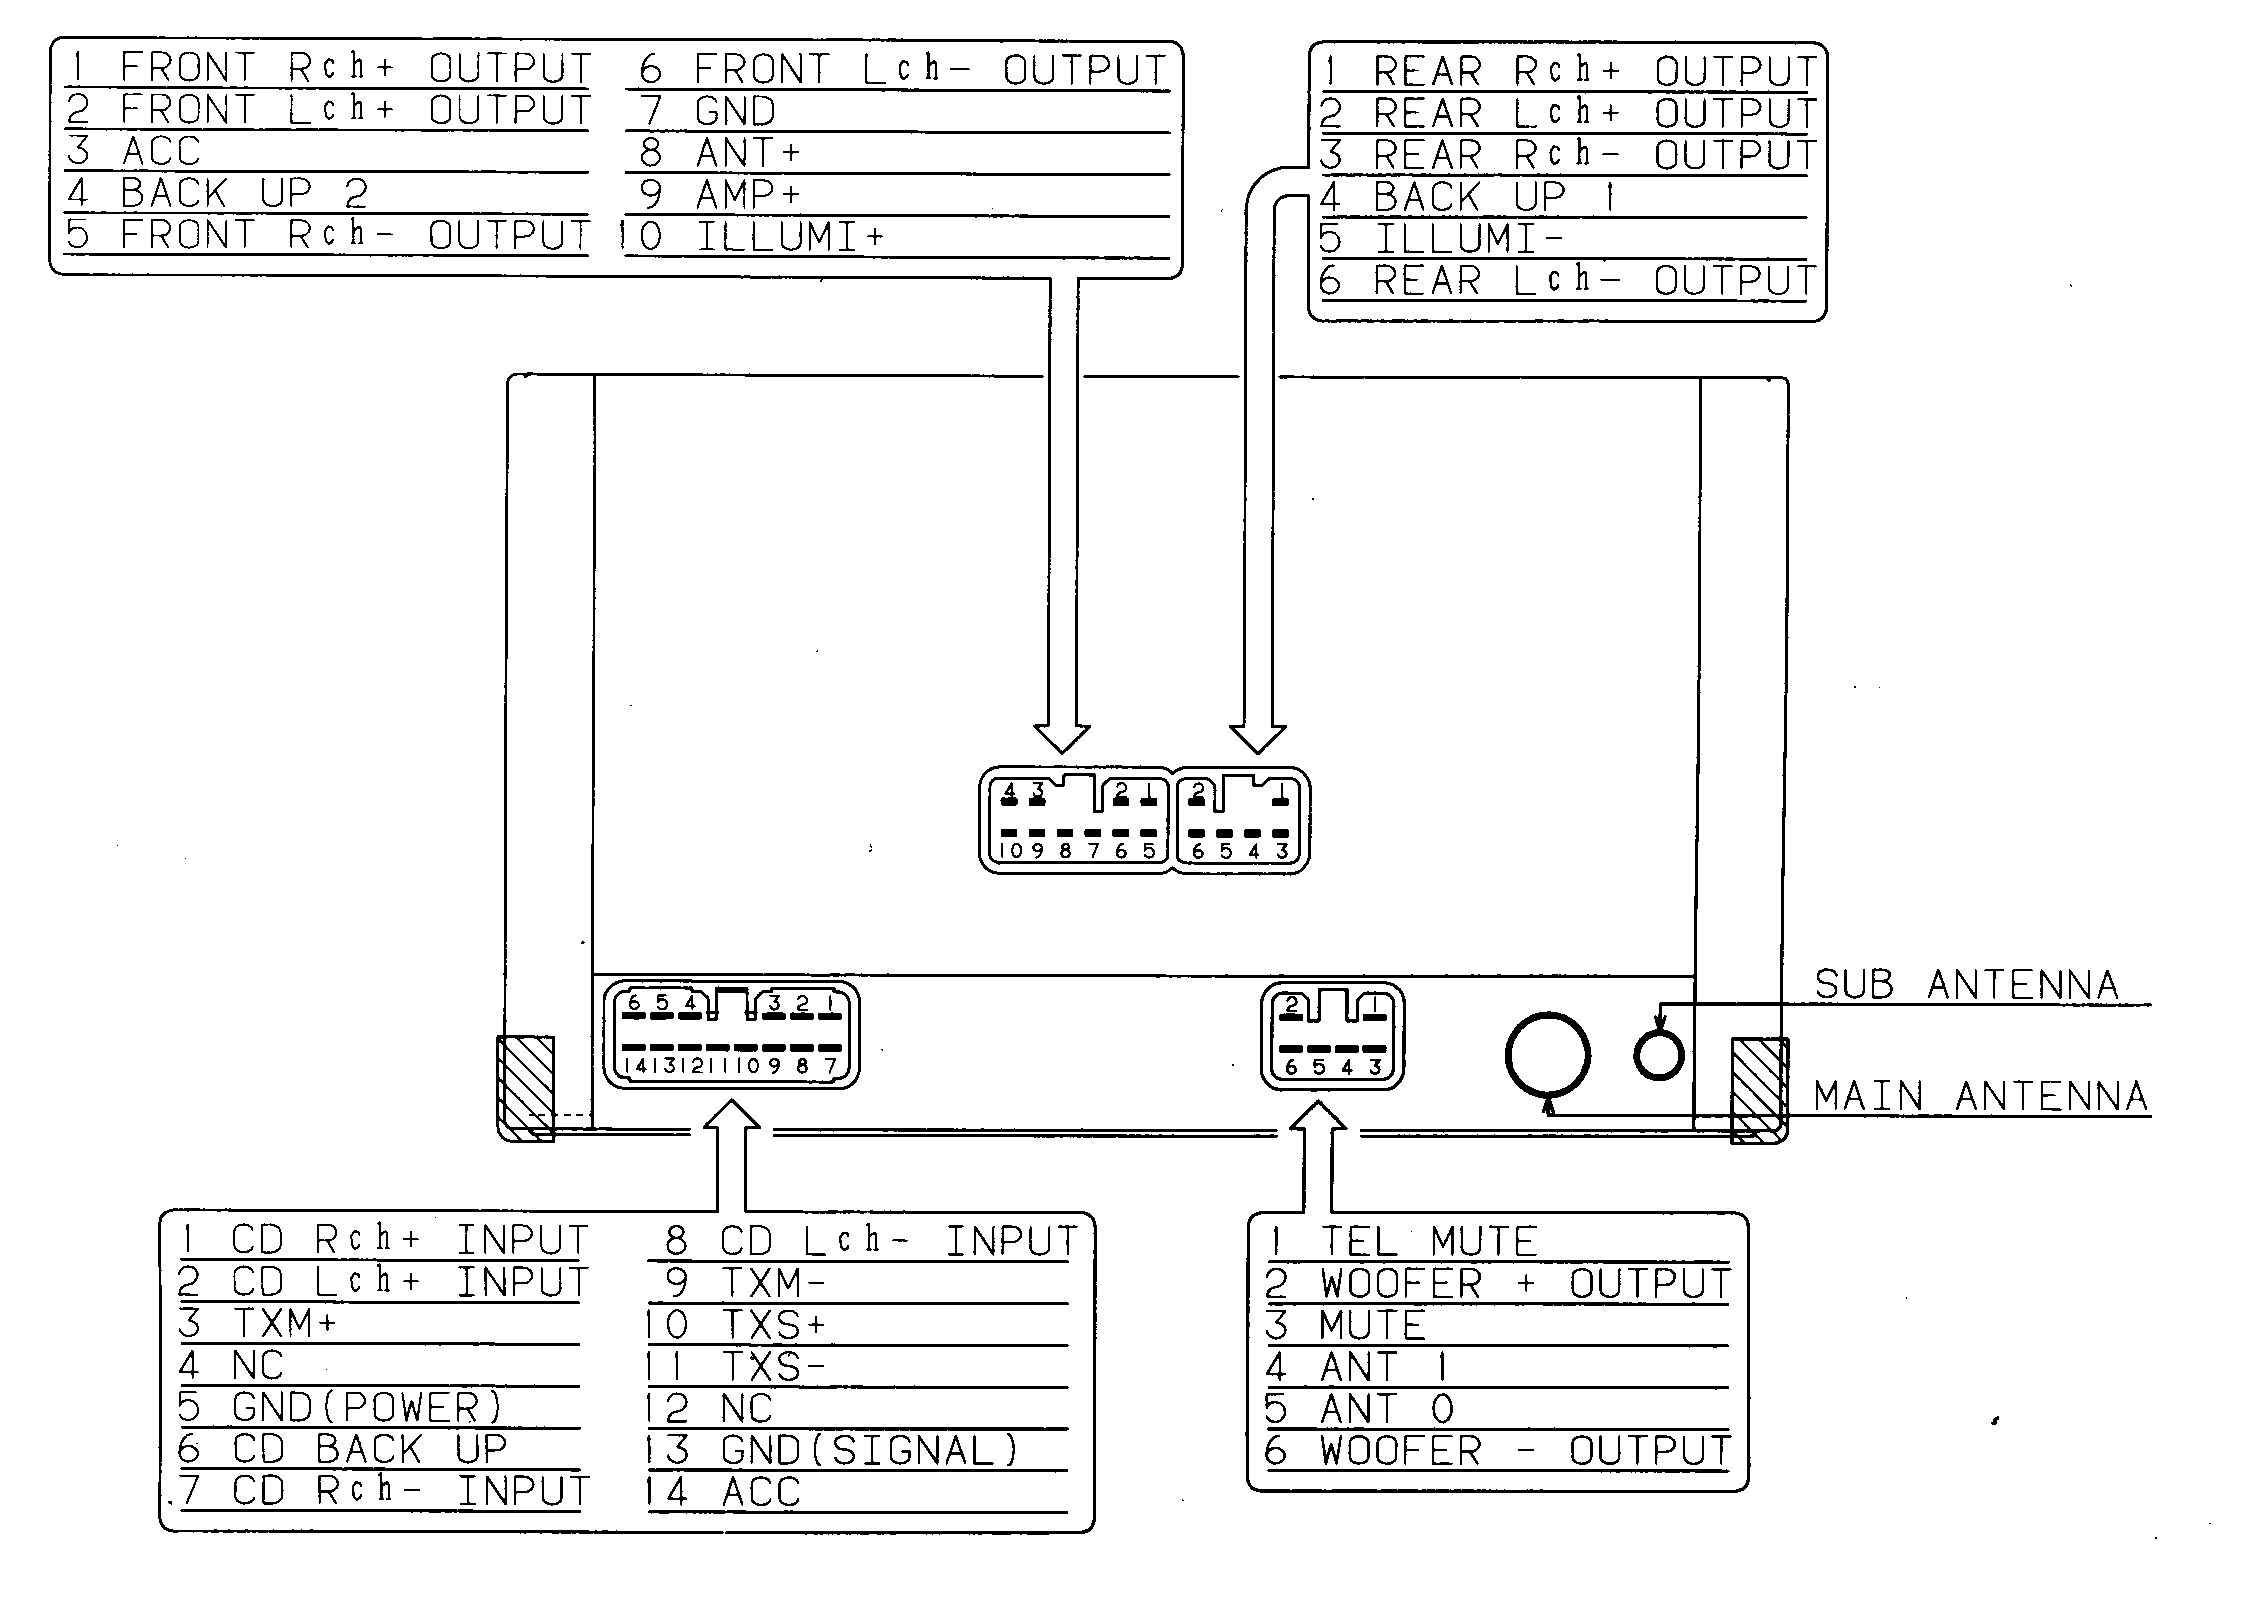 WireHarnessLexus121001 gs300 wiring diagram coleman furnace wiring diagram \u2022 free wiring  at creativeand.co